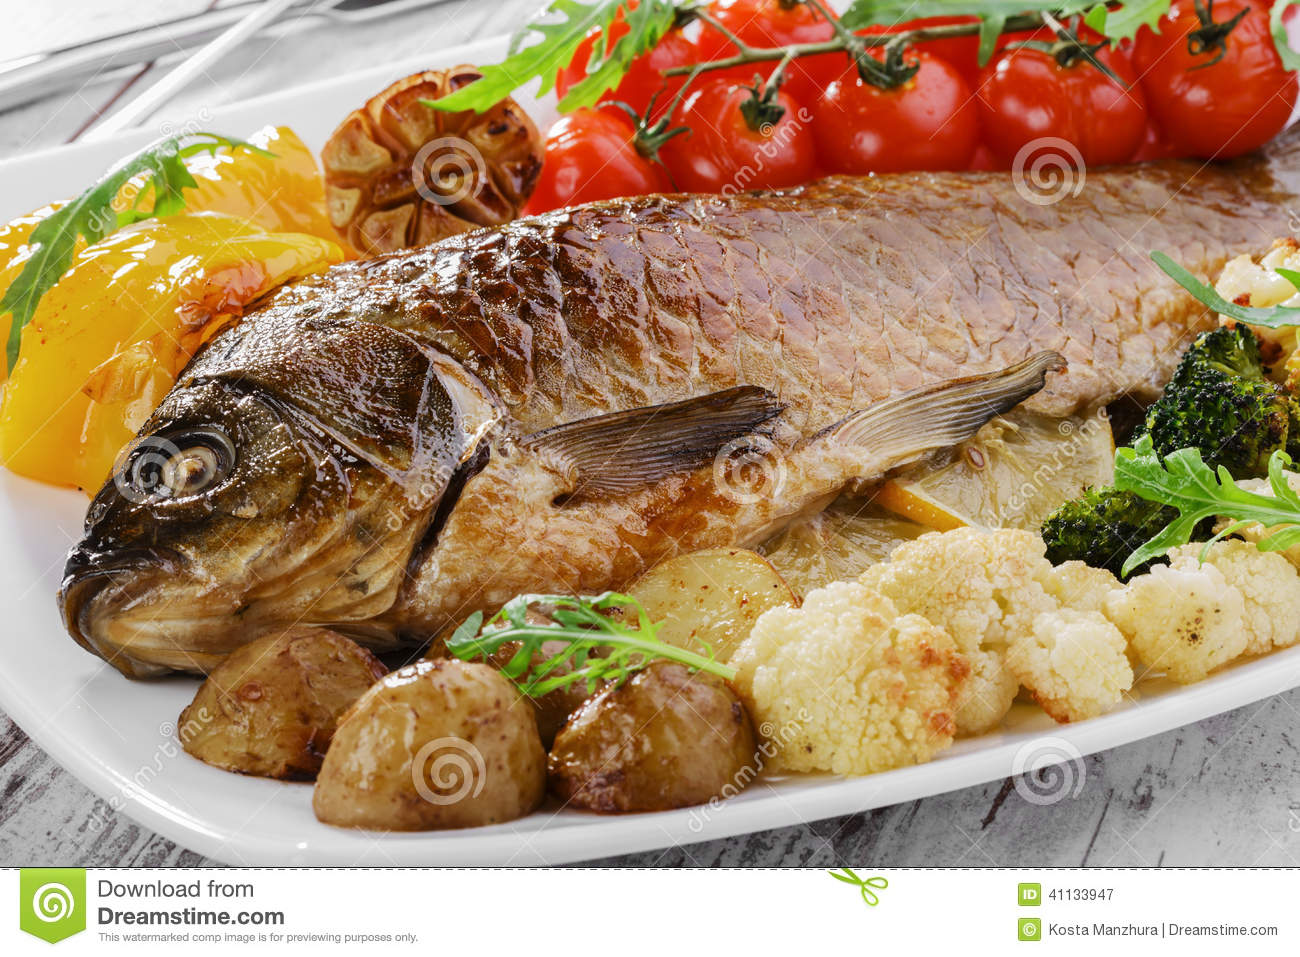 Baked fish with vegetables stock photo image 41133947 for Fish with vegetables